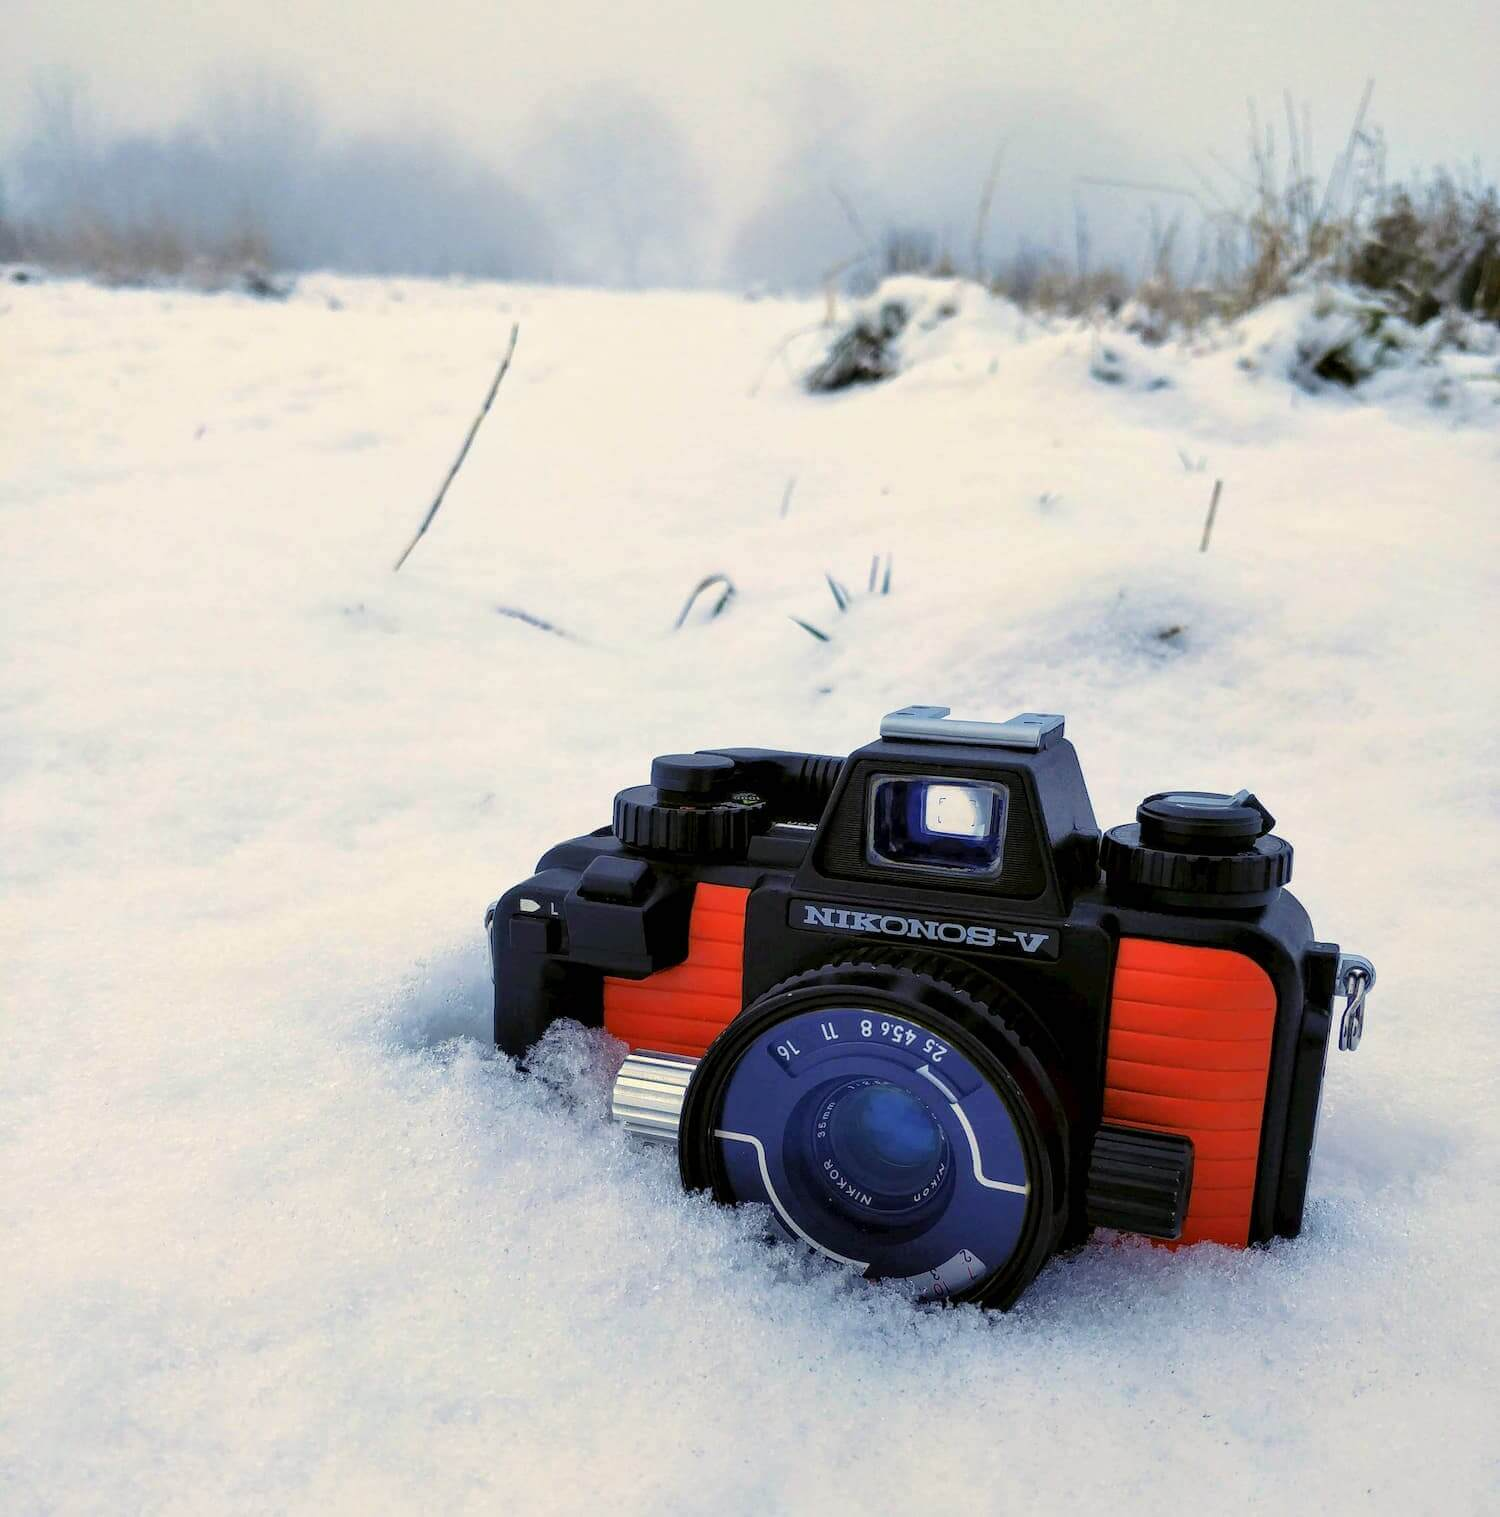 Nikonos V in the snow (front)